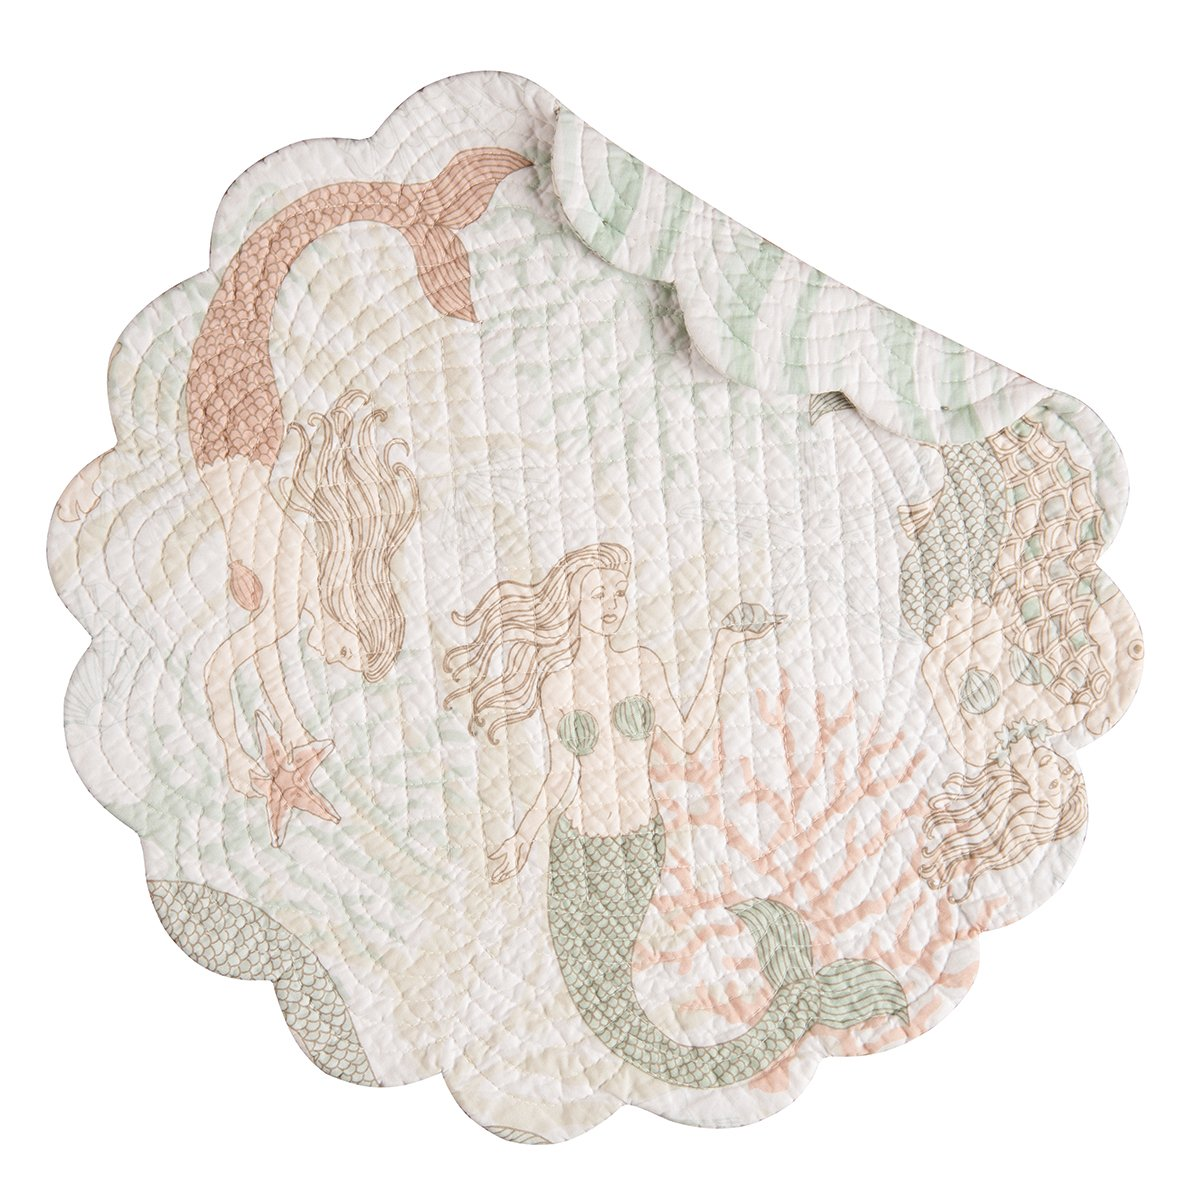 17 Round Quilted Placemat Mystic Echoes 17 Round Quilted Placemat C/&F Set of 4 PCS